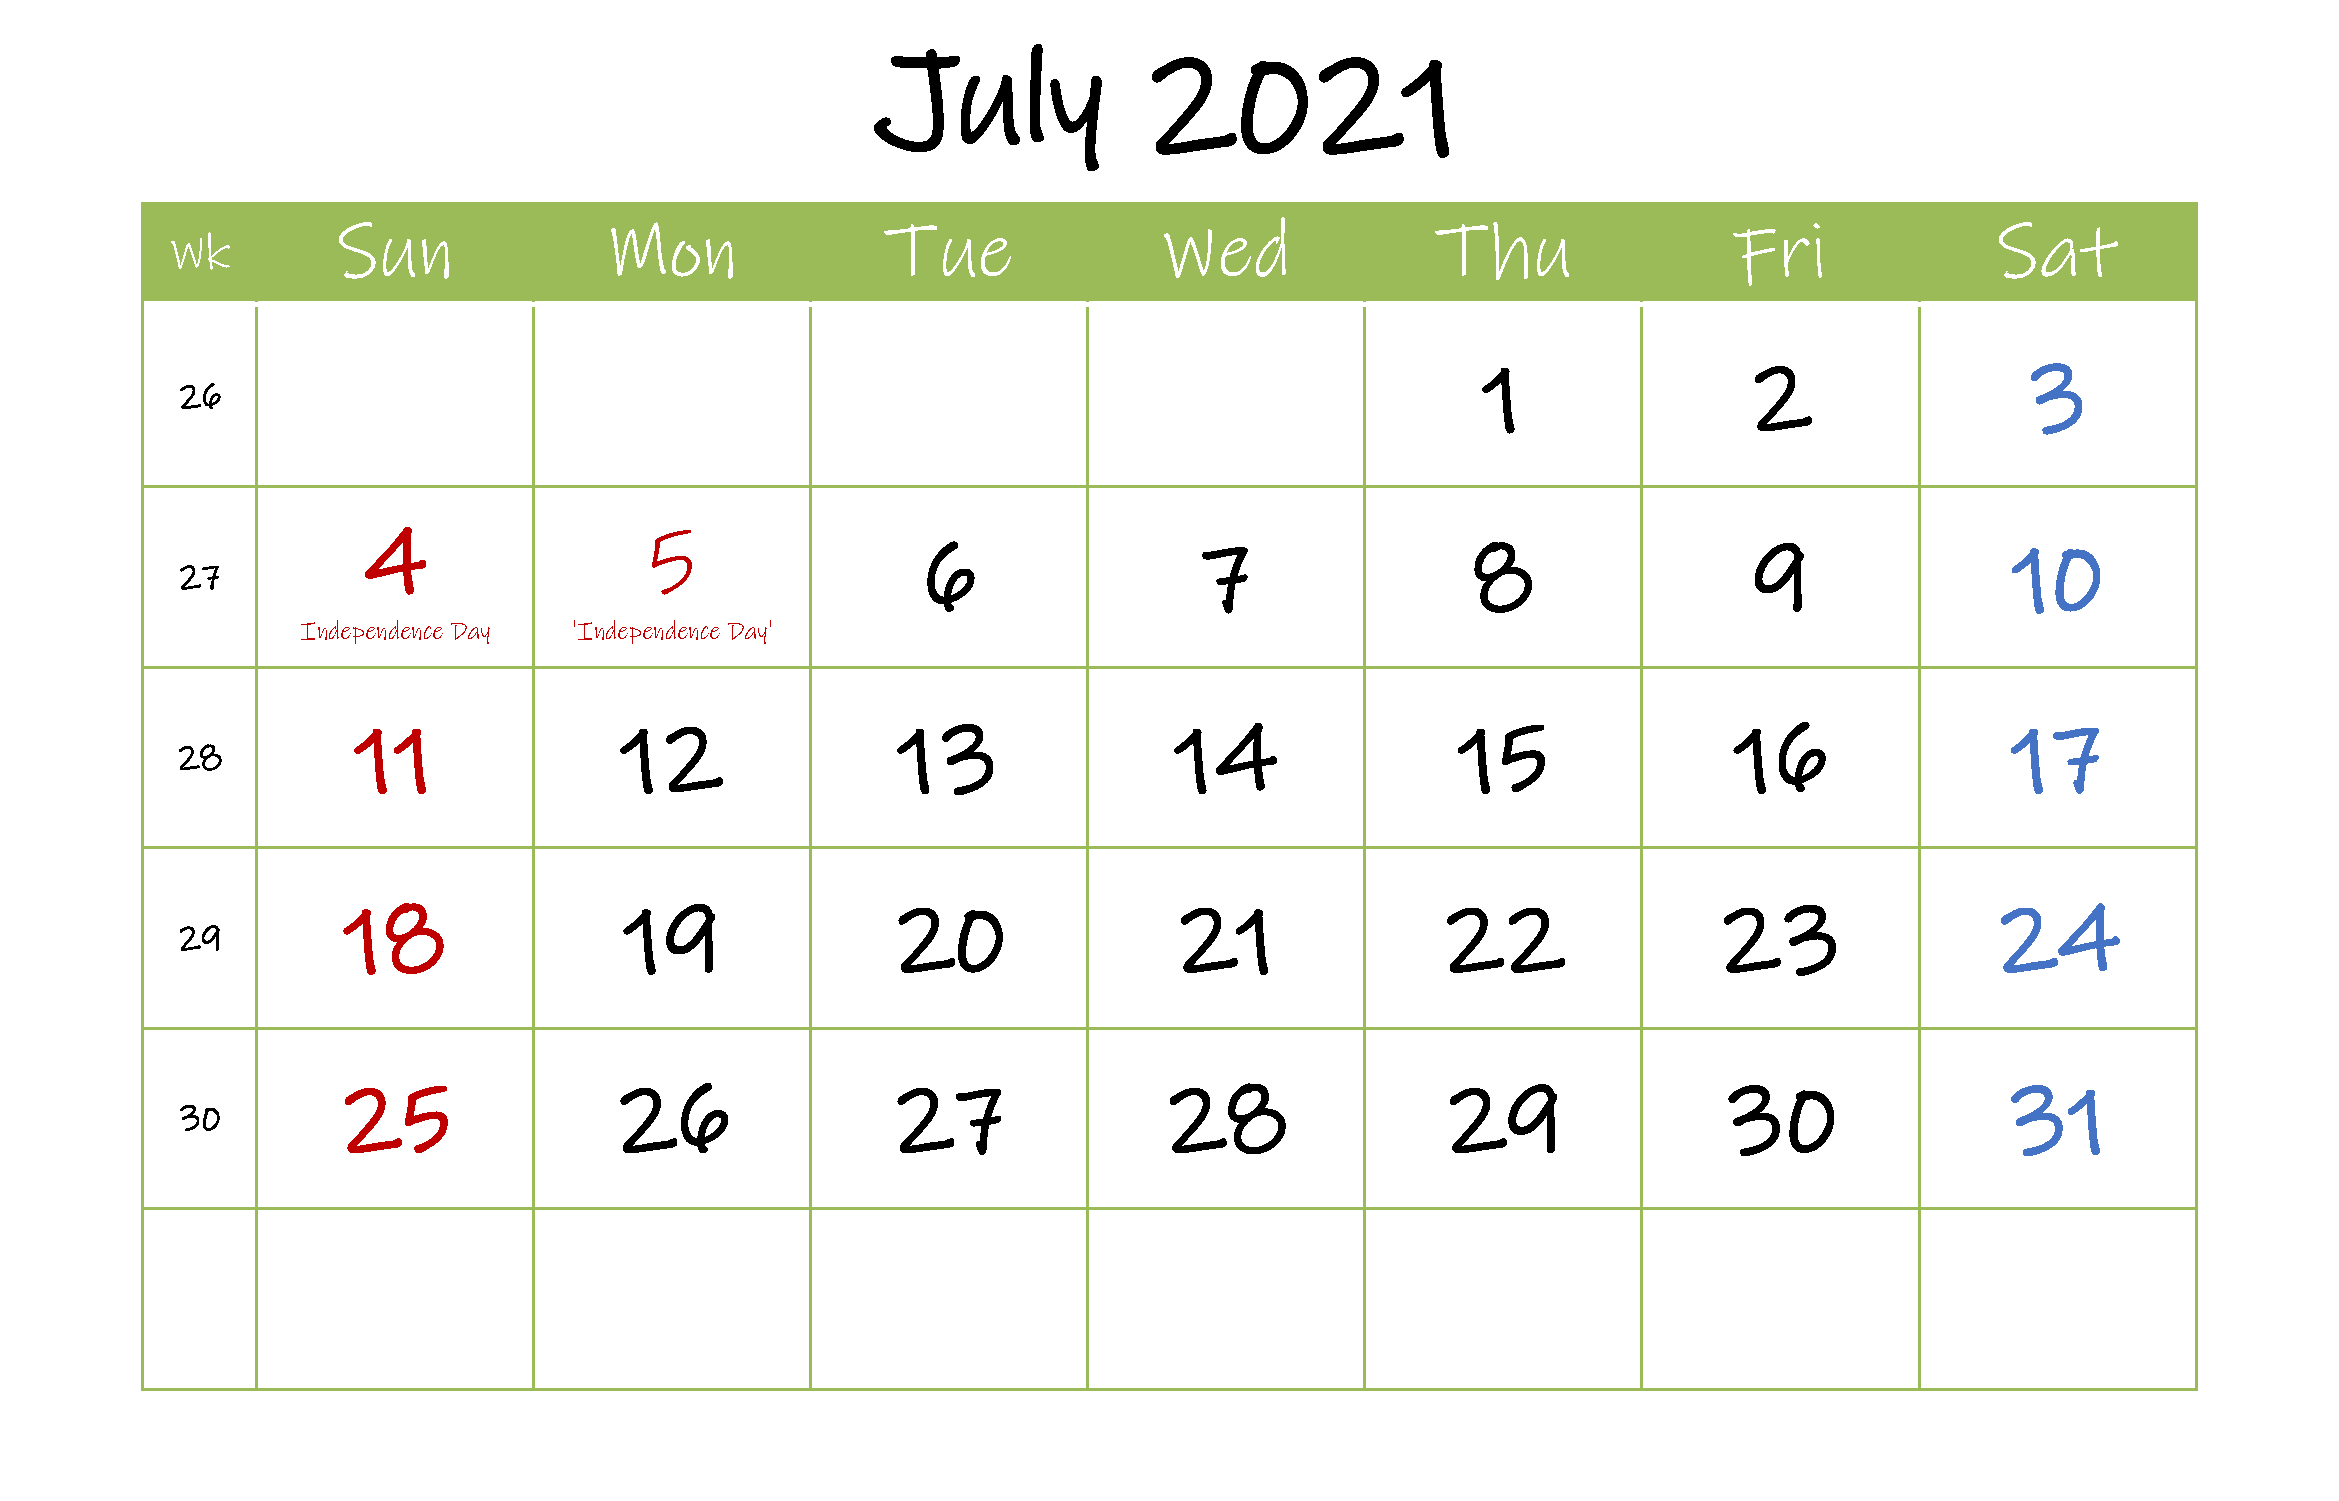 Free July 2021 Printable Calendar with Holidays